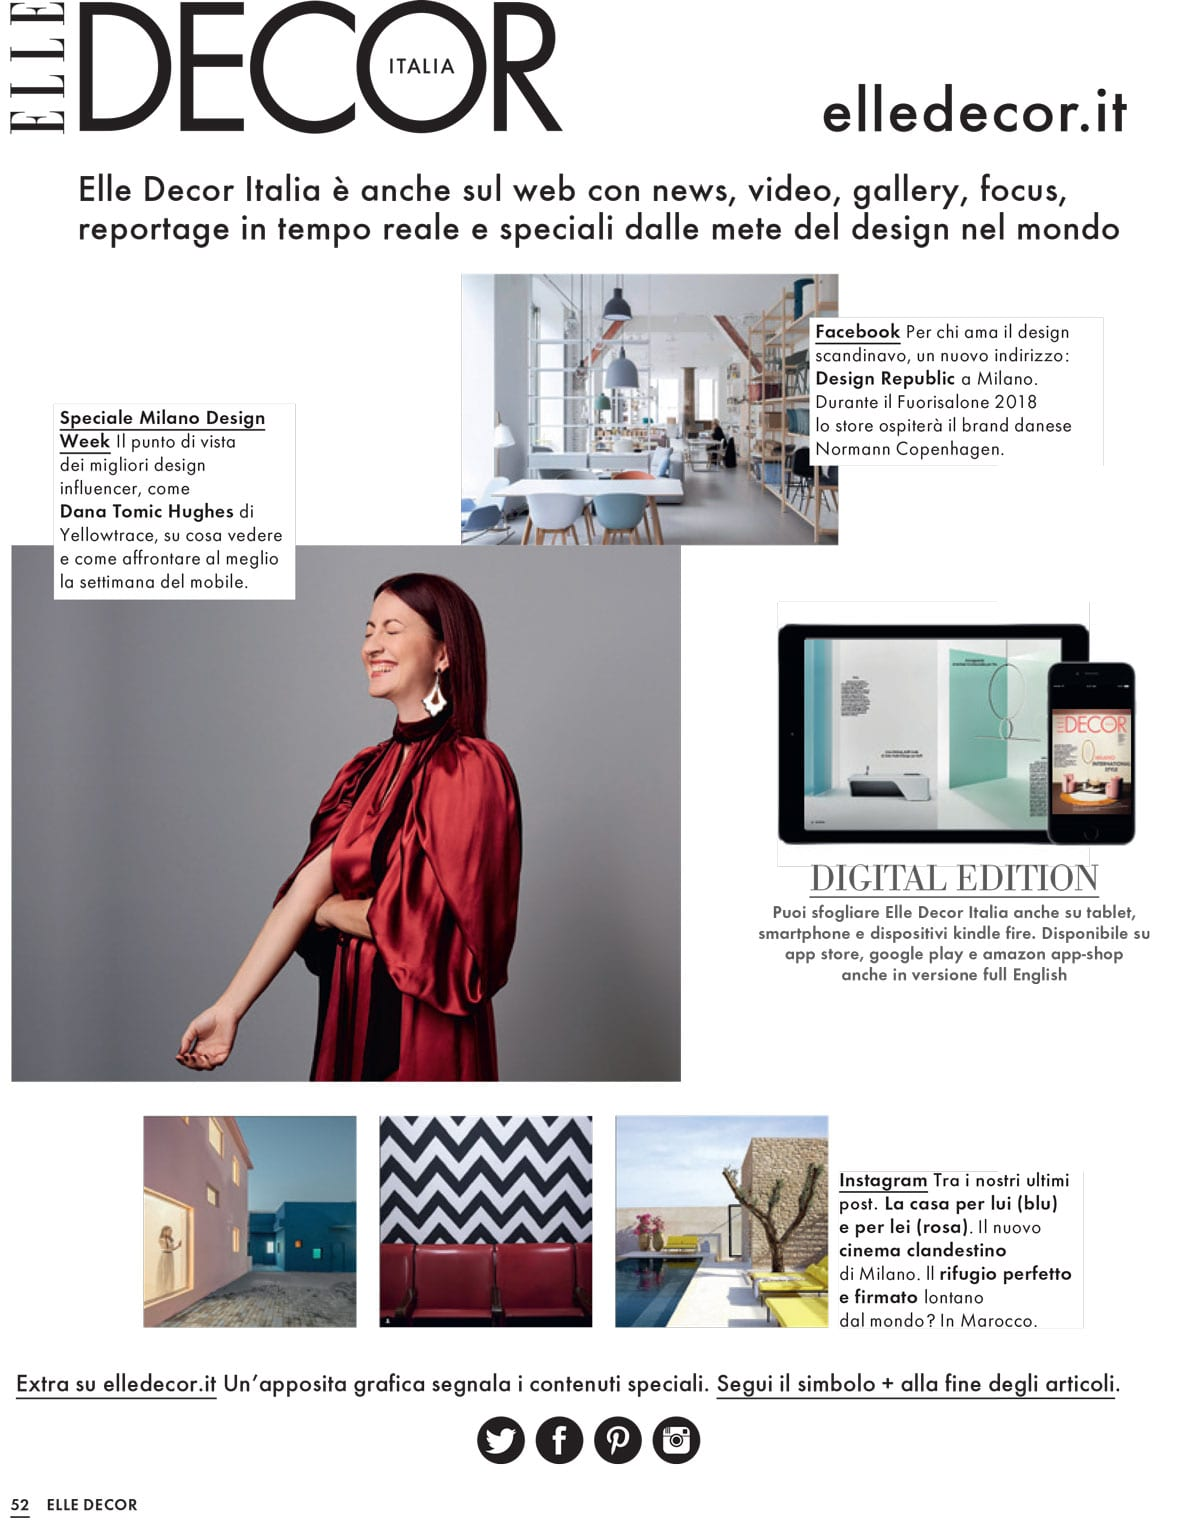 Elle Decor Italia April 2018 Salone del Mobile Special Issue Featuring Dana Tomic Hughes | Yellowtrace